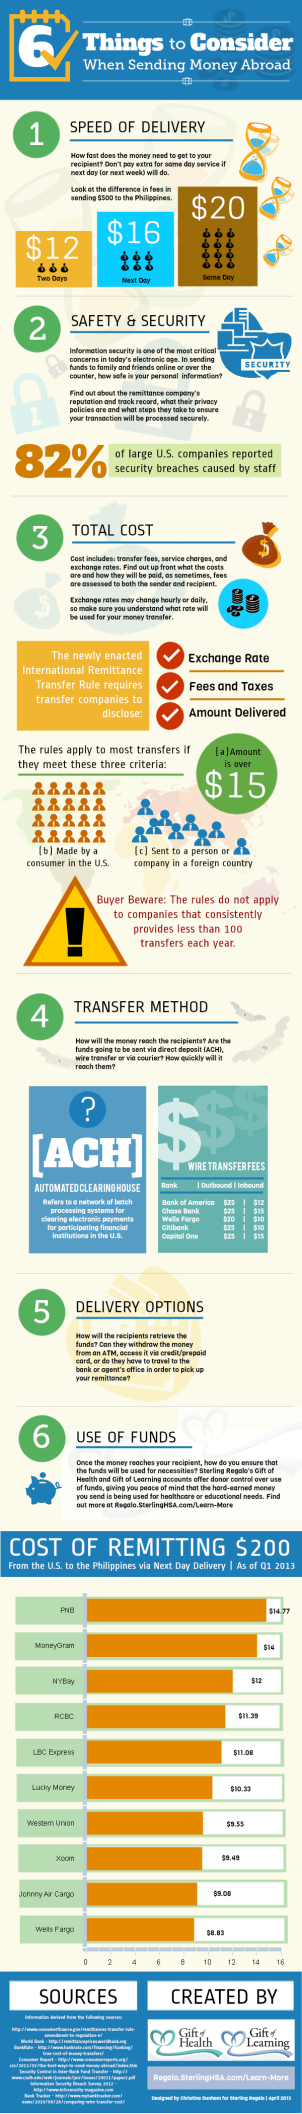 6-Things-to-Consider-When-Sending-Money-Abroad